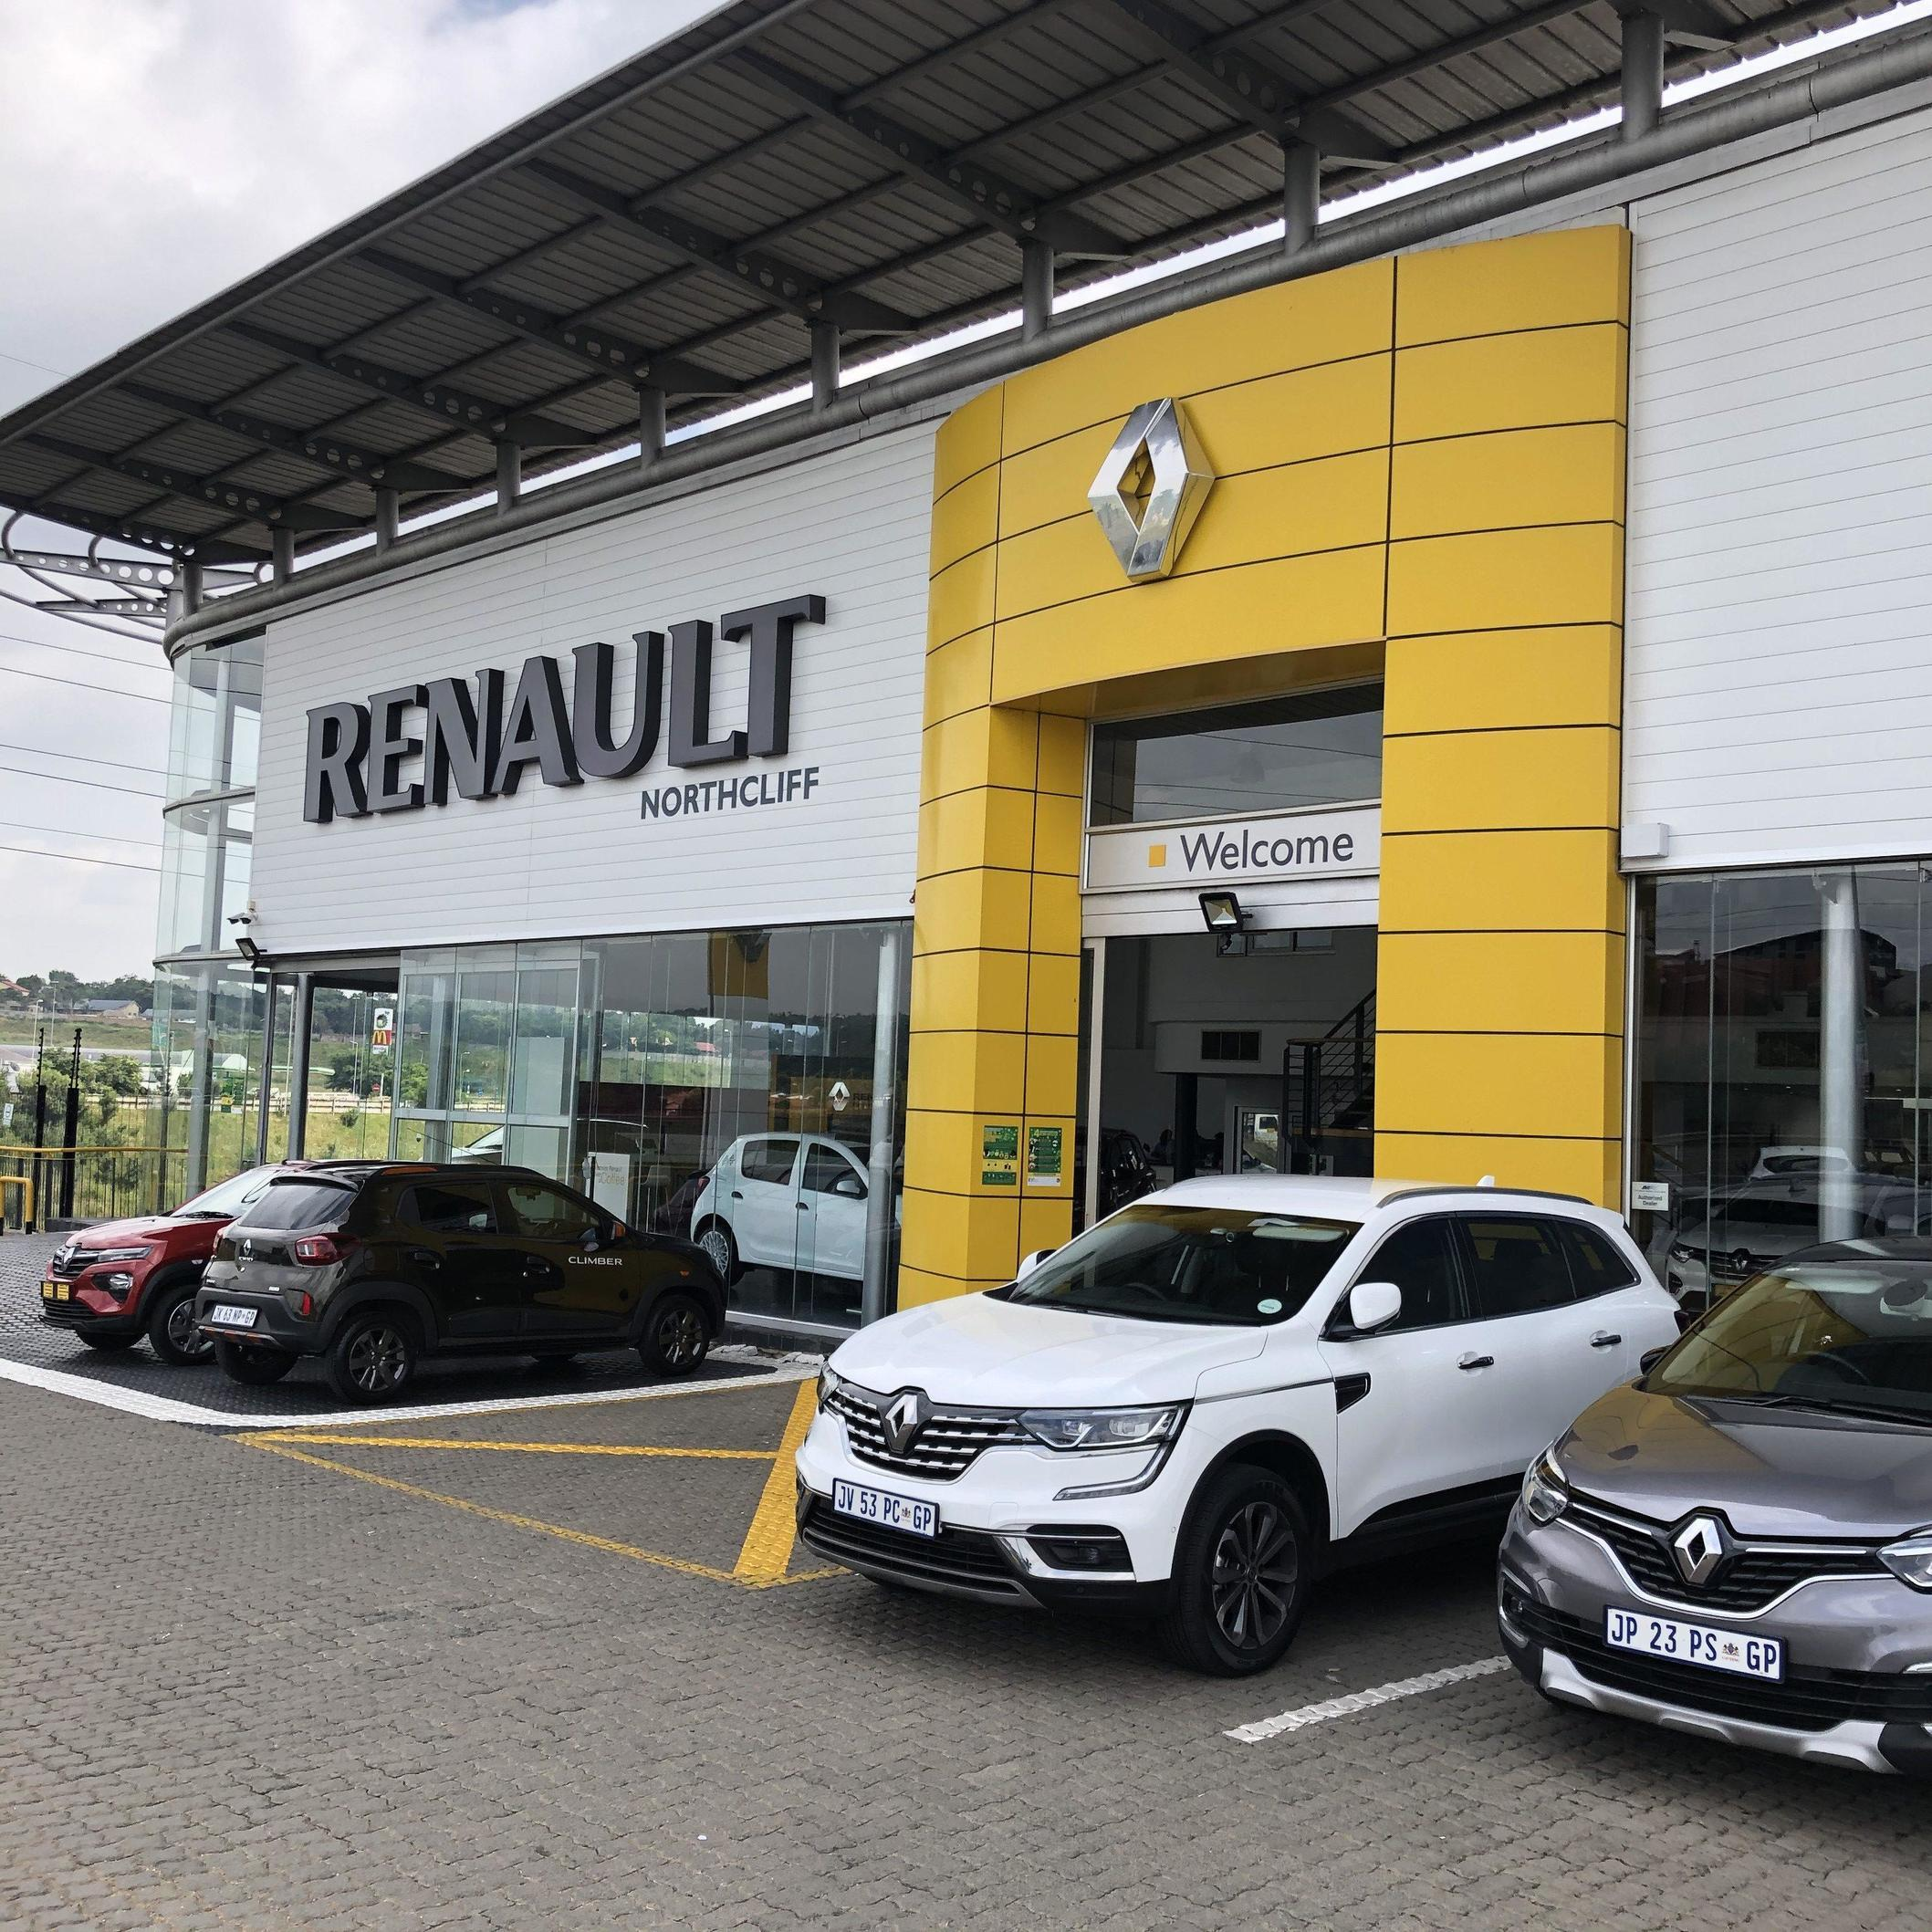 Renault Northcliff dealership